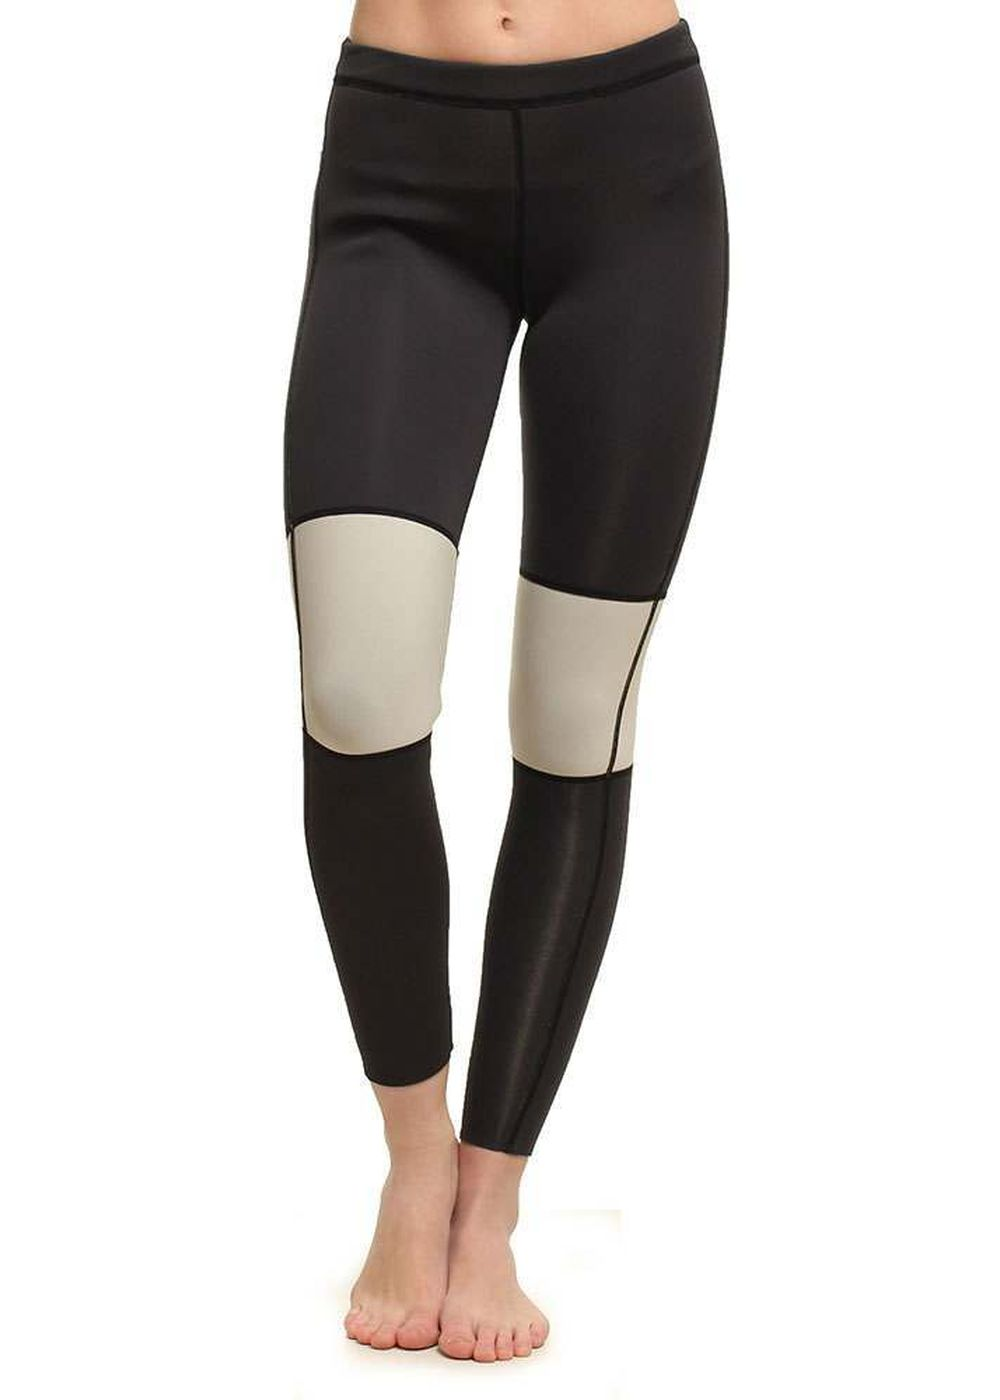 Billabong Skinny Sea Legs Wetsuit Leggings Black Picture